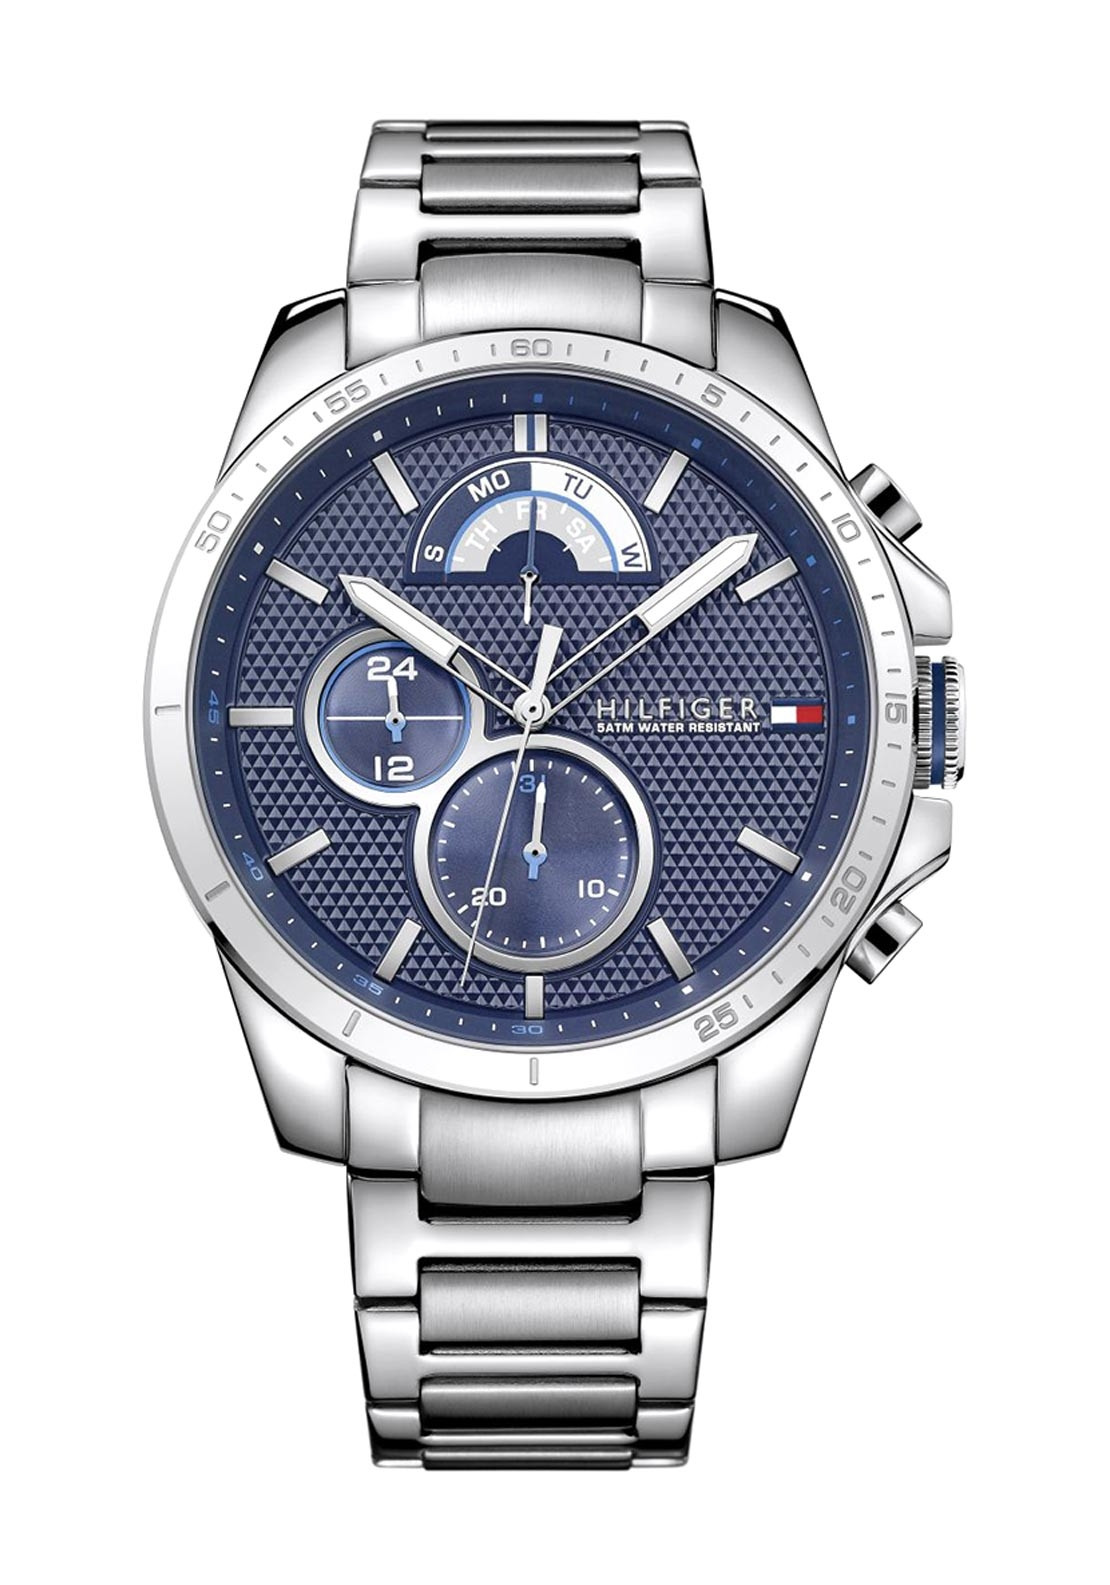 7db73e47e Tommy Hilfiger Mens Dark Blue Dial Stainless Steel Watch, Silver ...